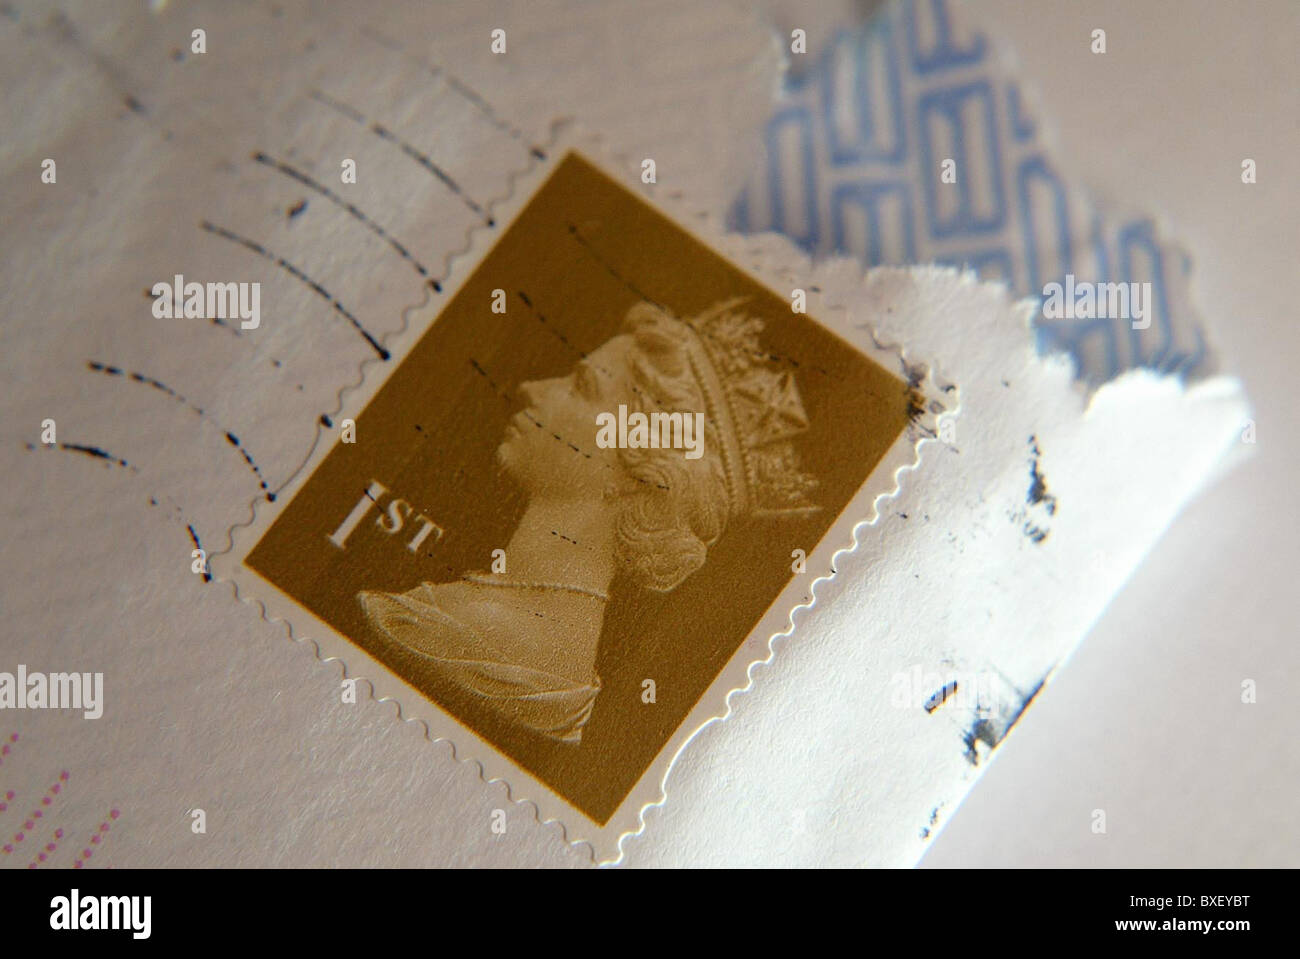 Queen Elizabeth II head on British Postal Stamps. - Stock Image